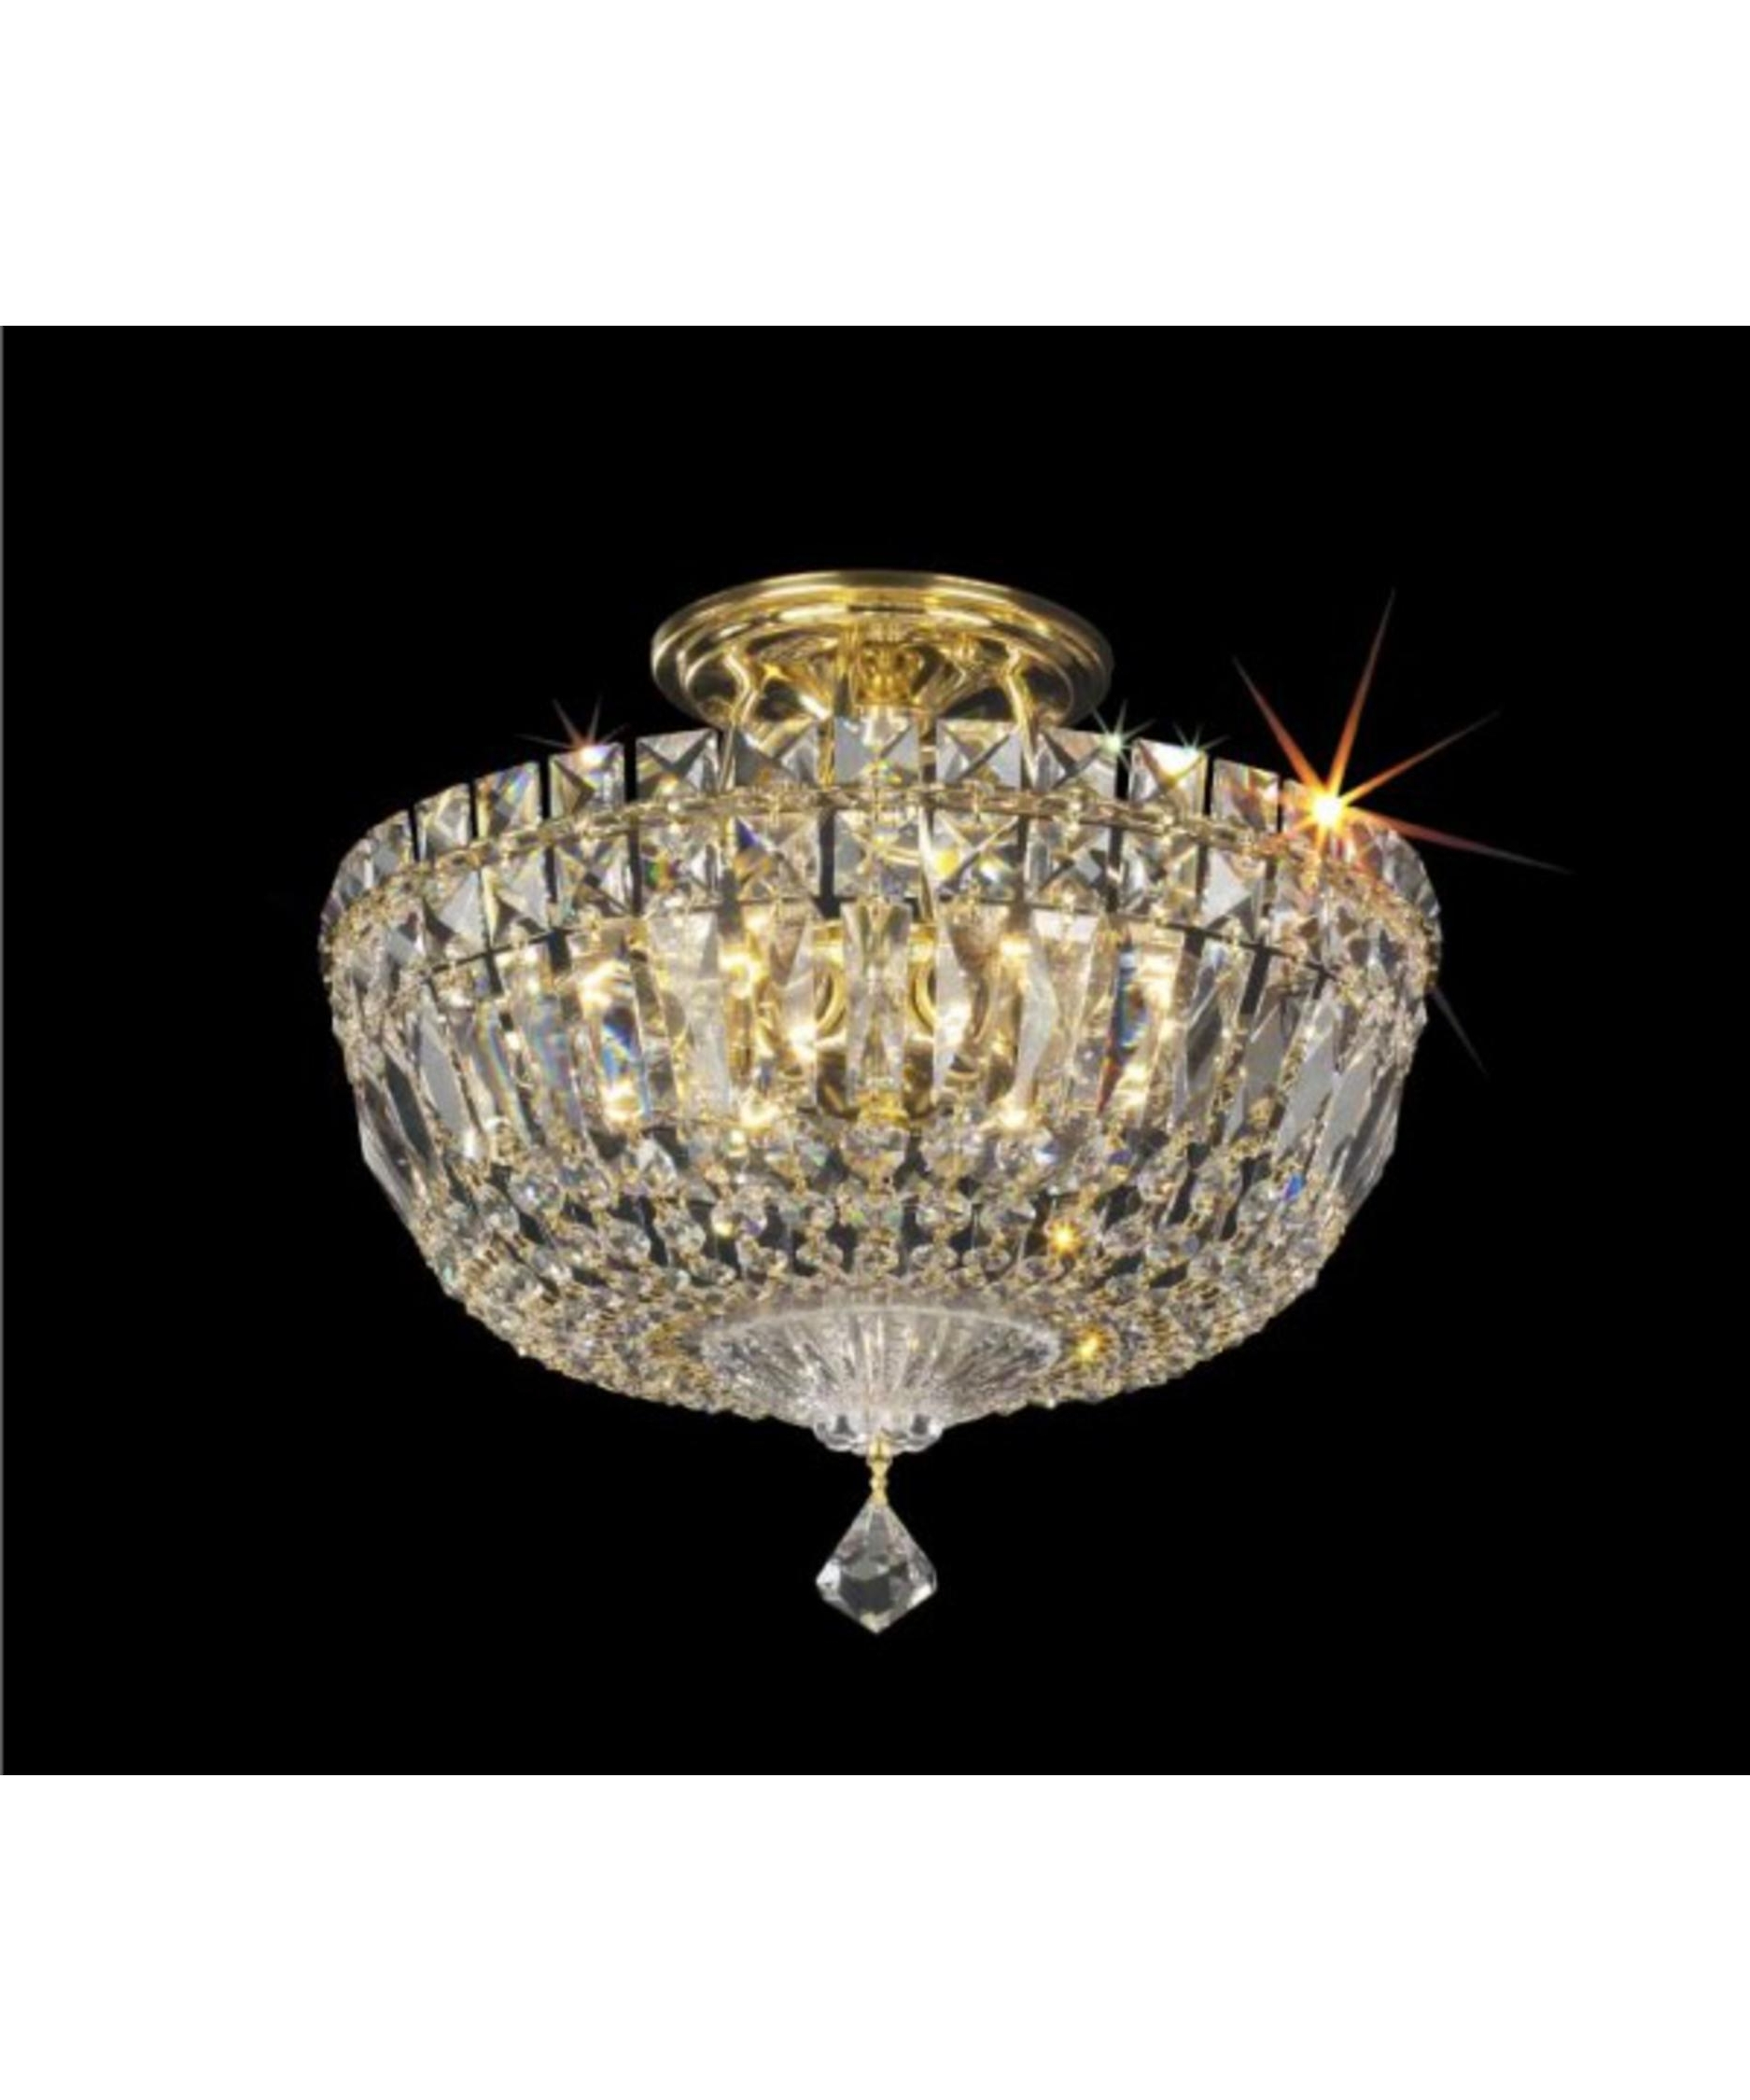 Wall Mount Crystal Chandeliers With Newest Light : Lovely Crystal Semi Flush Mount Lighting In Chandelier Of (View 4 of 20)